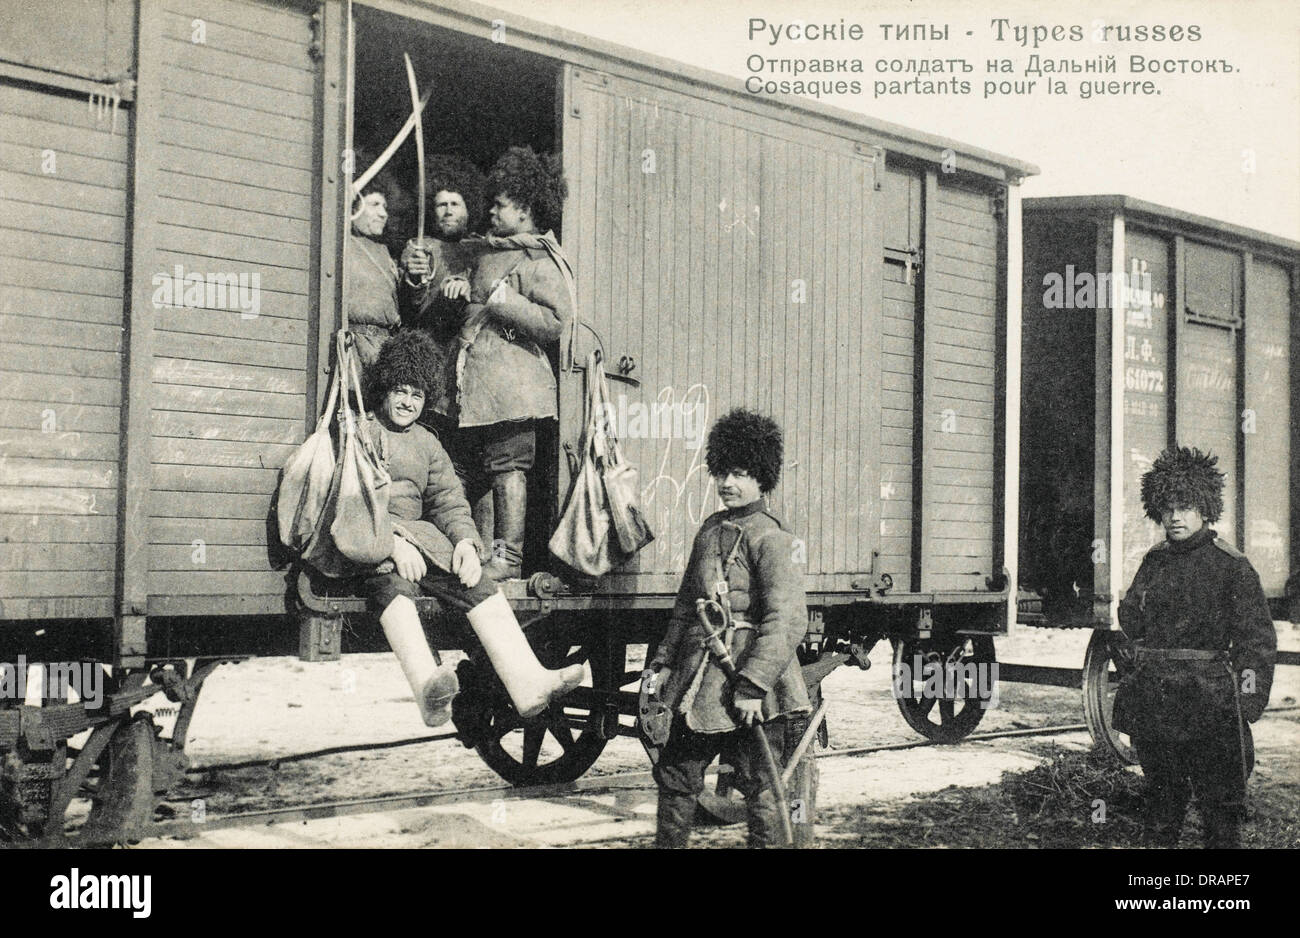 Cossack soldiers departing for war - Stock Image